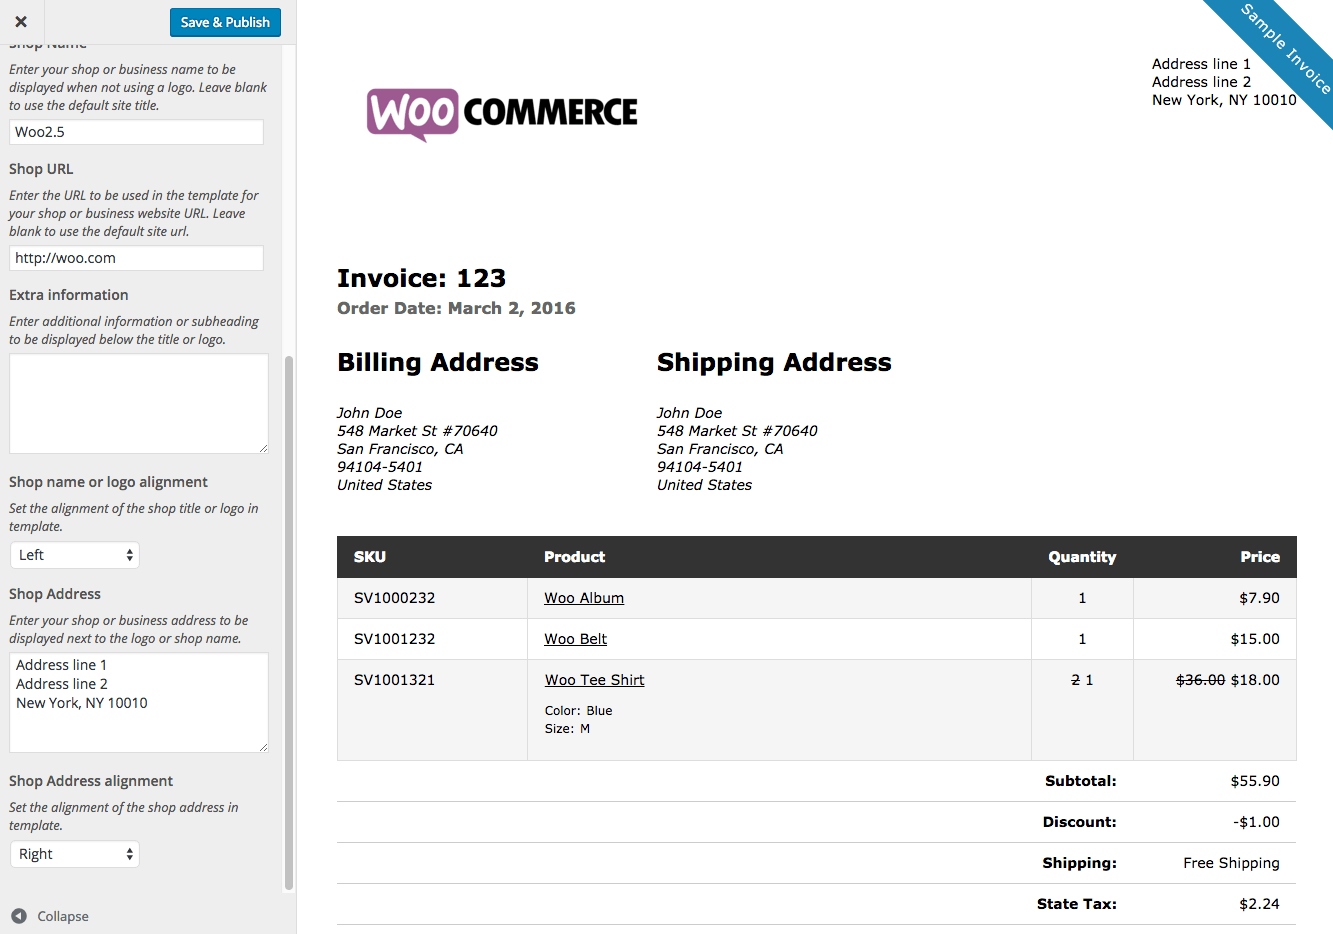 Angkajituus  Splendid Woocommerce Print Invoices Amp Packing Lists  Woocommerce Docs With Luxury Woocommerce Print Invoices  Packing Lists Customizer With Beautiful It Invoice Also Pay An Invoice In Addition Invoice With Logo And Invoice Factoring Software As Well As Custom Carbon Invoices Additionally Excel Invoice Template  From Docswoocommercecom With Angkajituus  Luxury Woocommerce Print Invoices Amp Packing Lists  Woocommerce Docs With Beautiful Woocommerce Print Invoices  Packing Lists Customizer And Splendid It Invoice Also Pay An Invoice In Addition Invoice With Logo From Docswoocommercecom